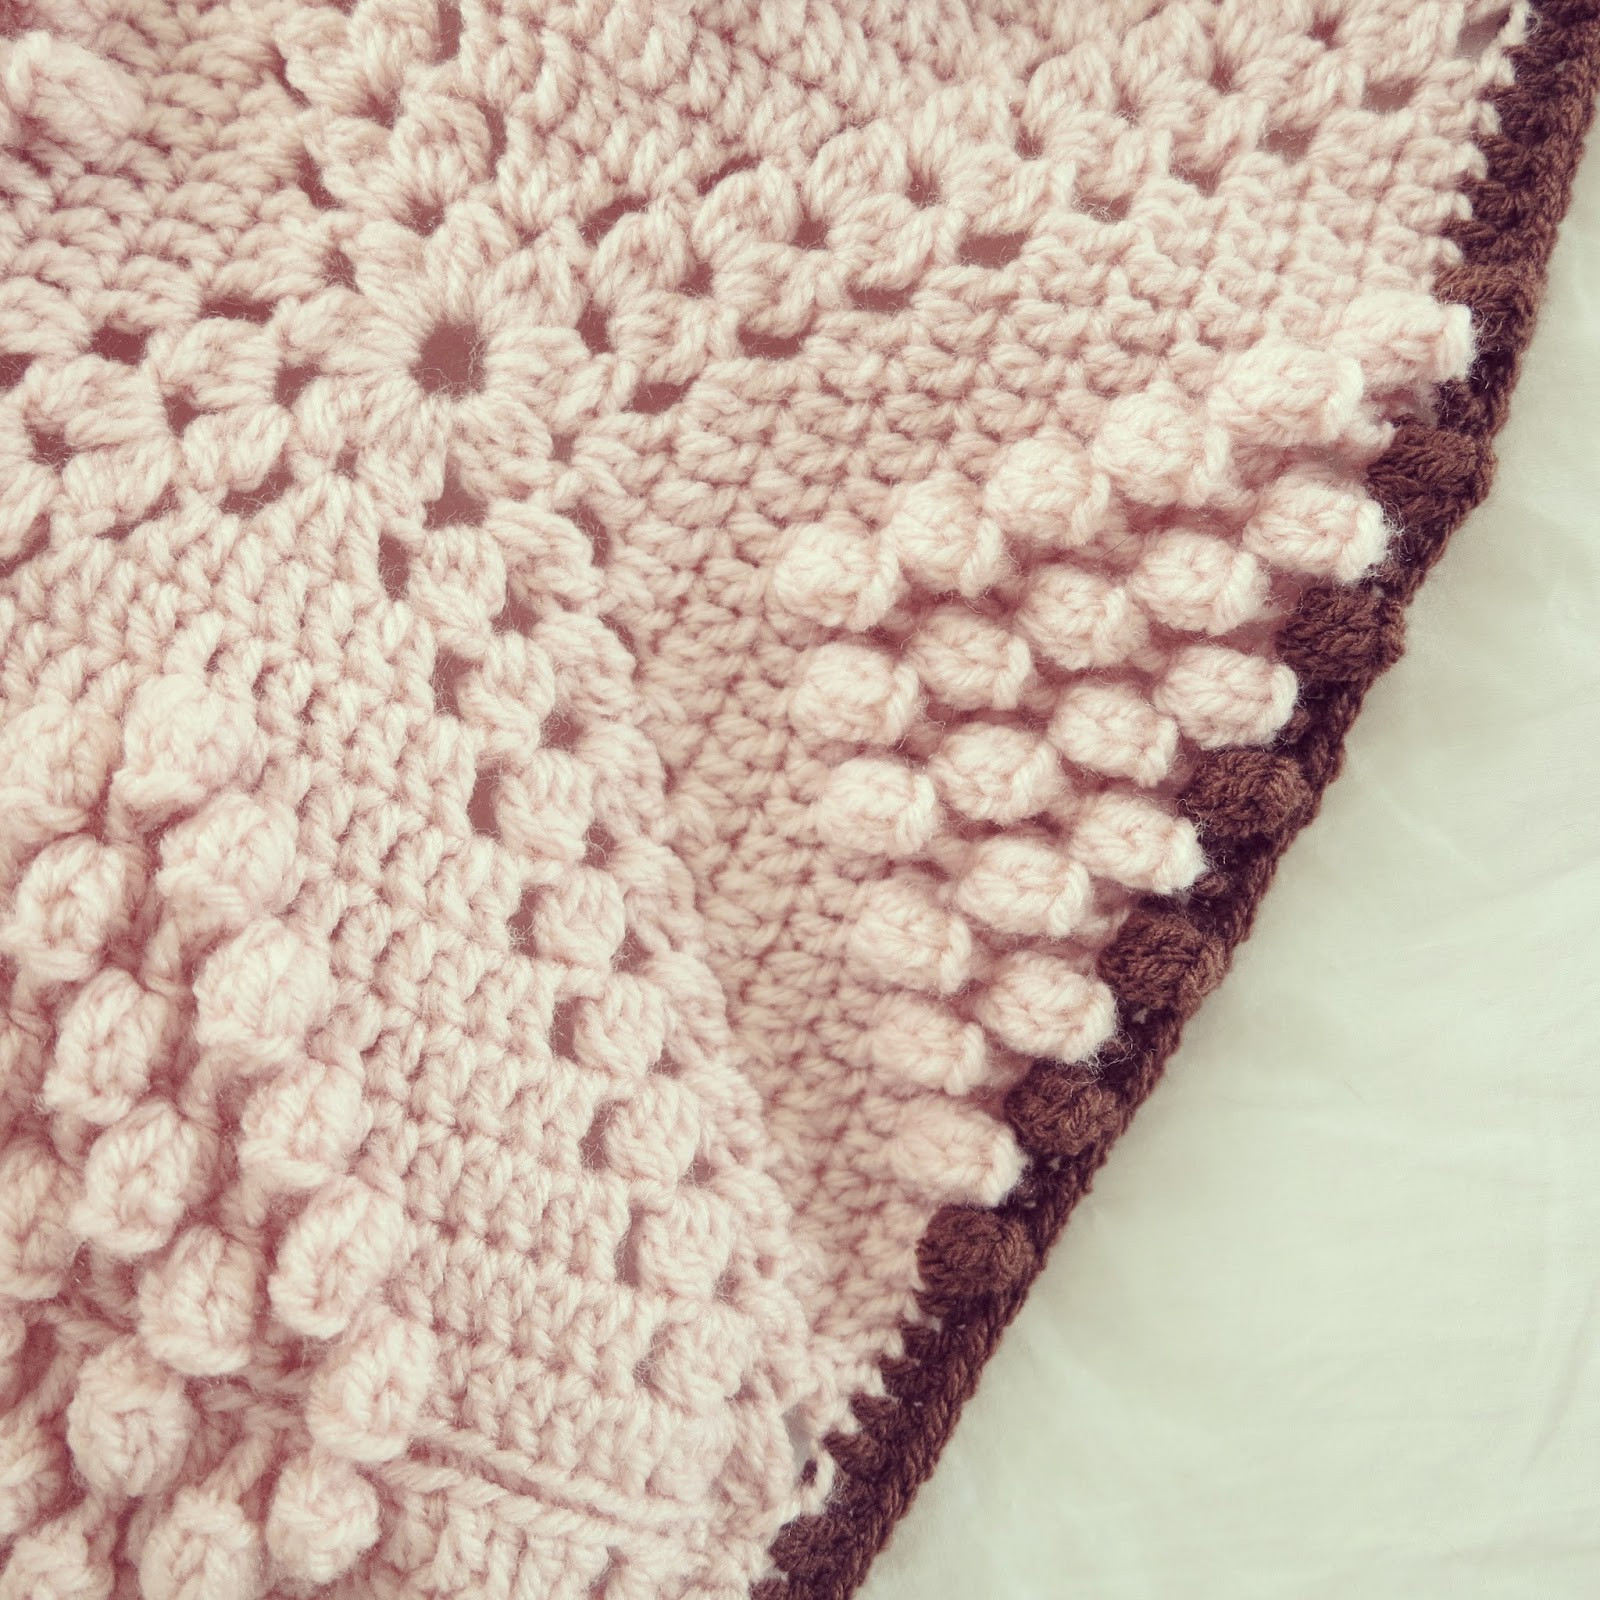 Beautiful byhaafner Crochet Pattern Popcorn Blanket Popcorn Stitch Crochet Patterns Of Best Of How to Crochet Lazy Popcorn Stitch No Removing Your Hook Popcorn Stitch Crochet Patterns